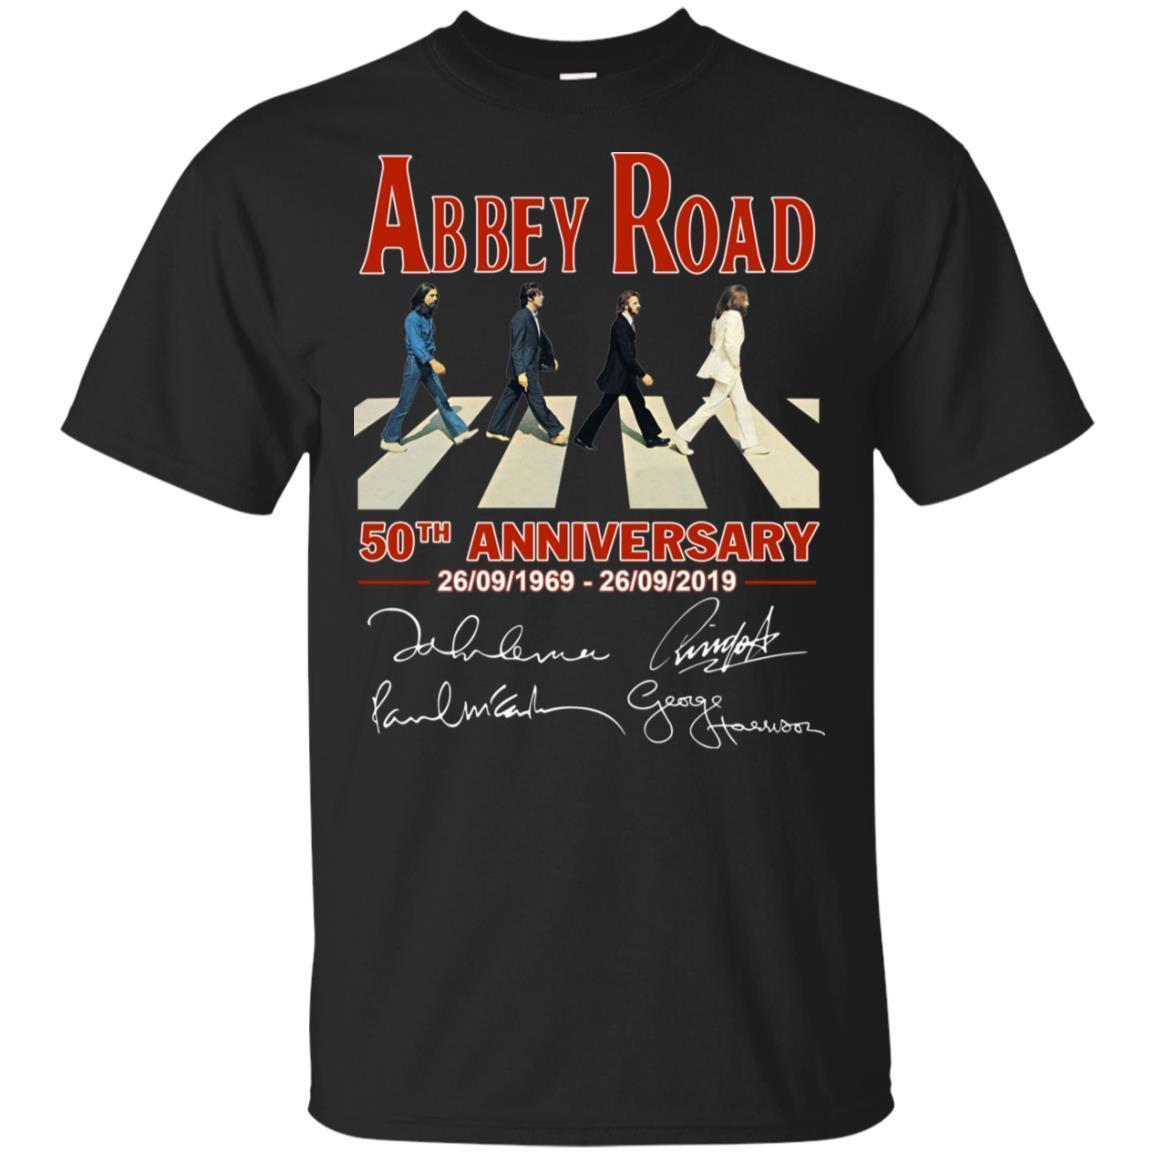 Abbey Road 50th Anniversary The Beatles T-shirt Signatures 1969-2019 LT05